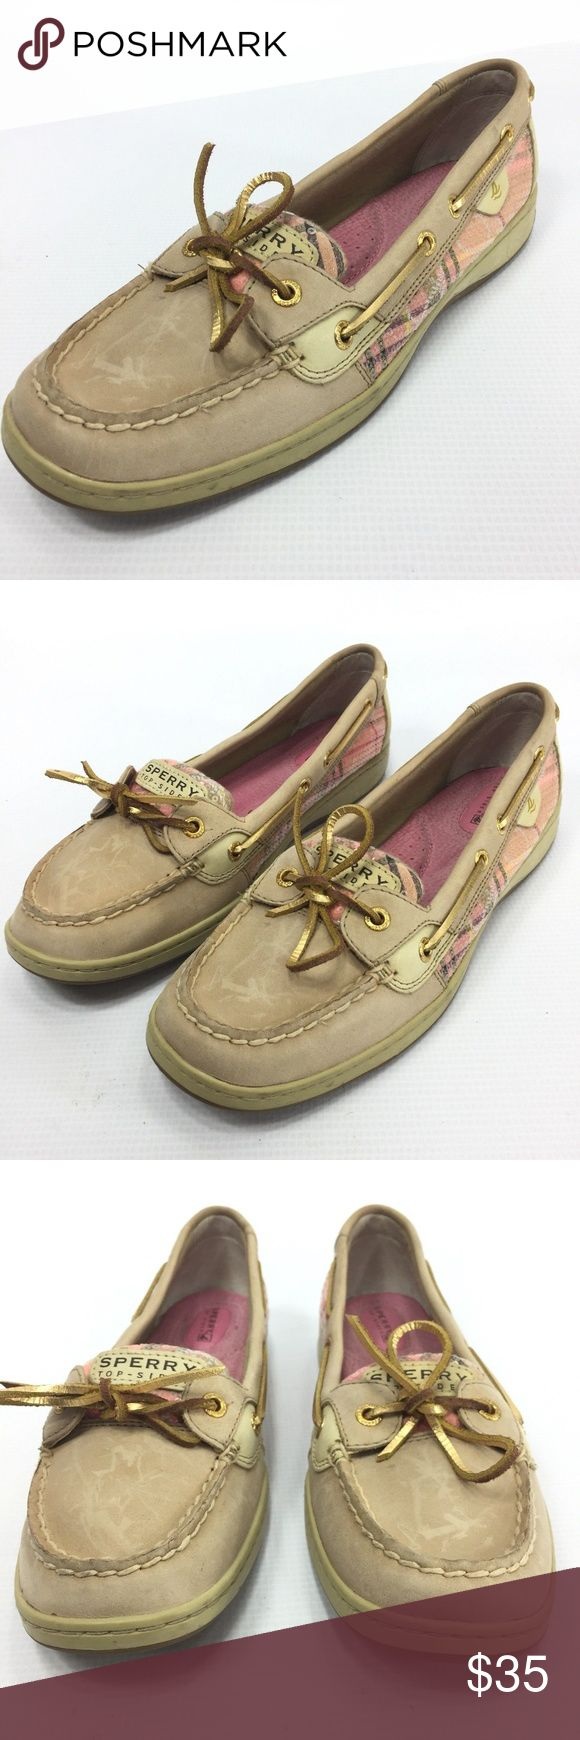 SPERRY Top Sider AngelFish 2 Eyelet Loafer 9.5 SPERRY Top Sider AngelFish Women's 2 Eyelet Loafer Moccasin Sequin 9.5  Flaw Free; See Photos for Details  The item will be shipped either the same or next day  Send me a message if you have any questions Sperry Shoes Flats & Loafers